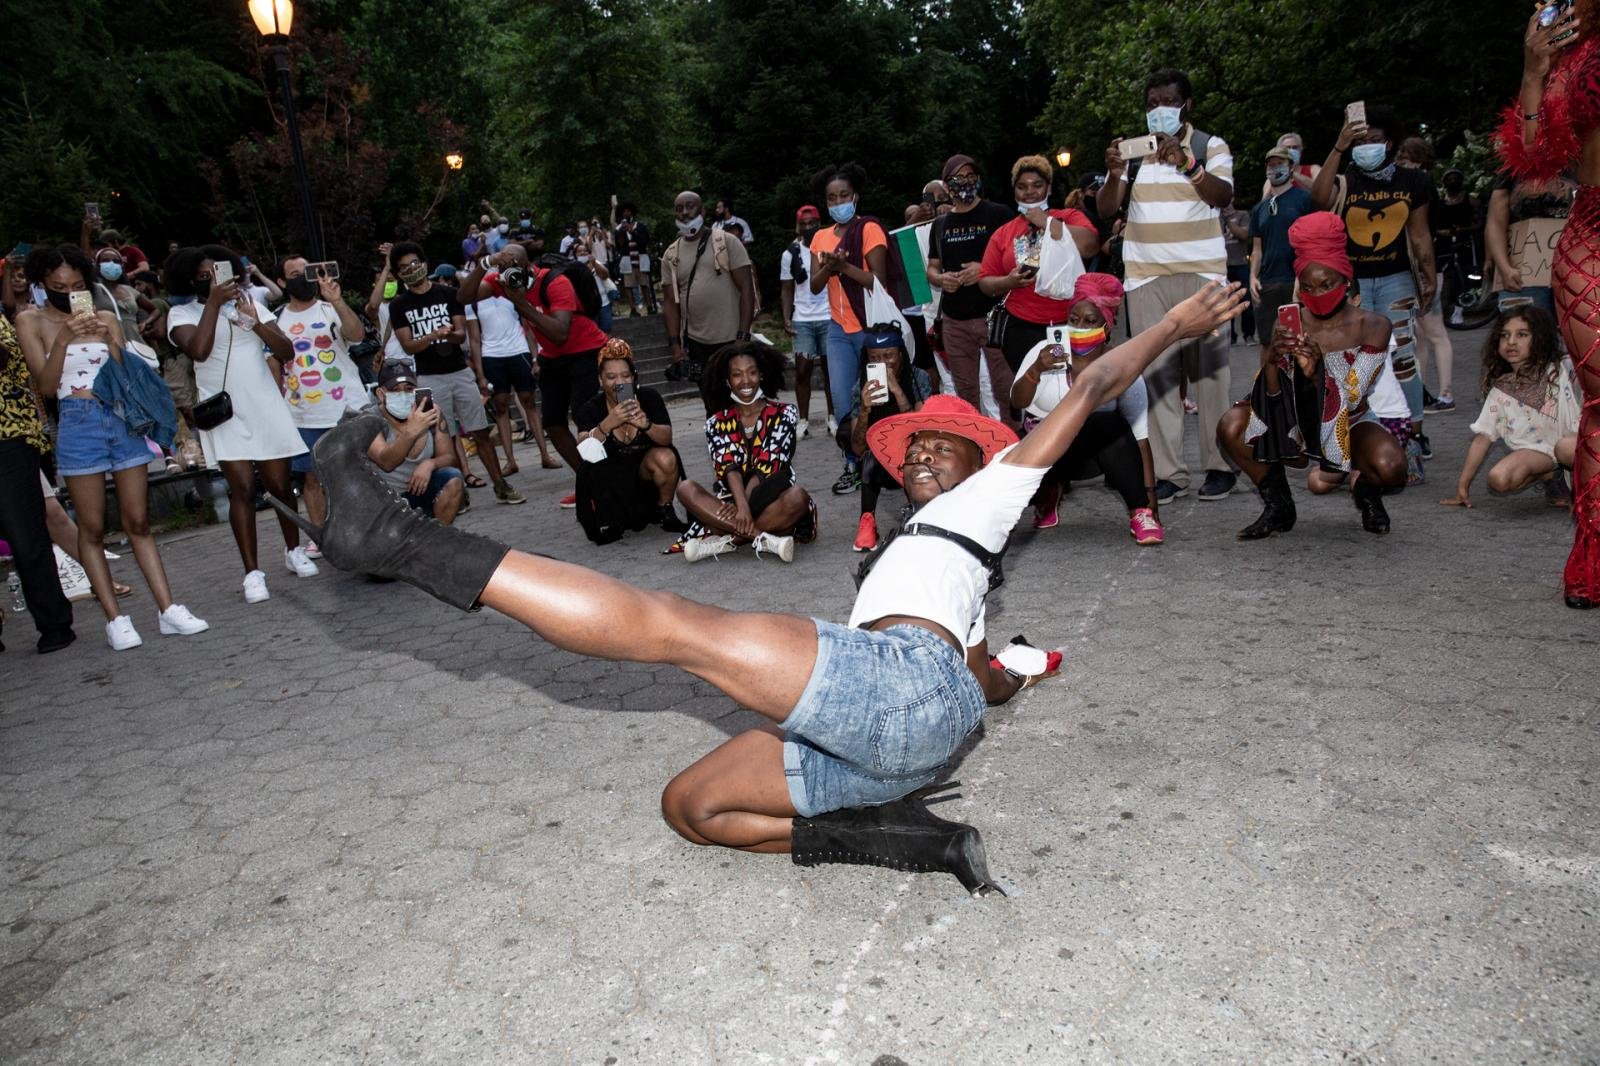 Photography image - Loading 2020-06-19-Protest-Juneteenth-ABC-1827.jpg